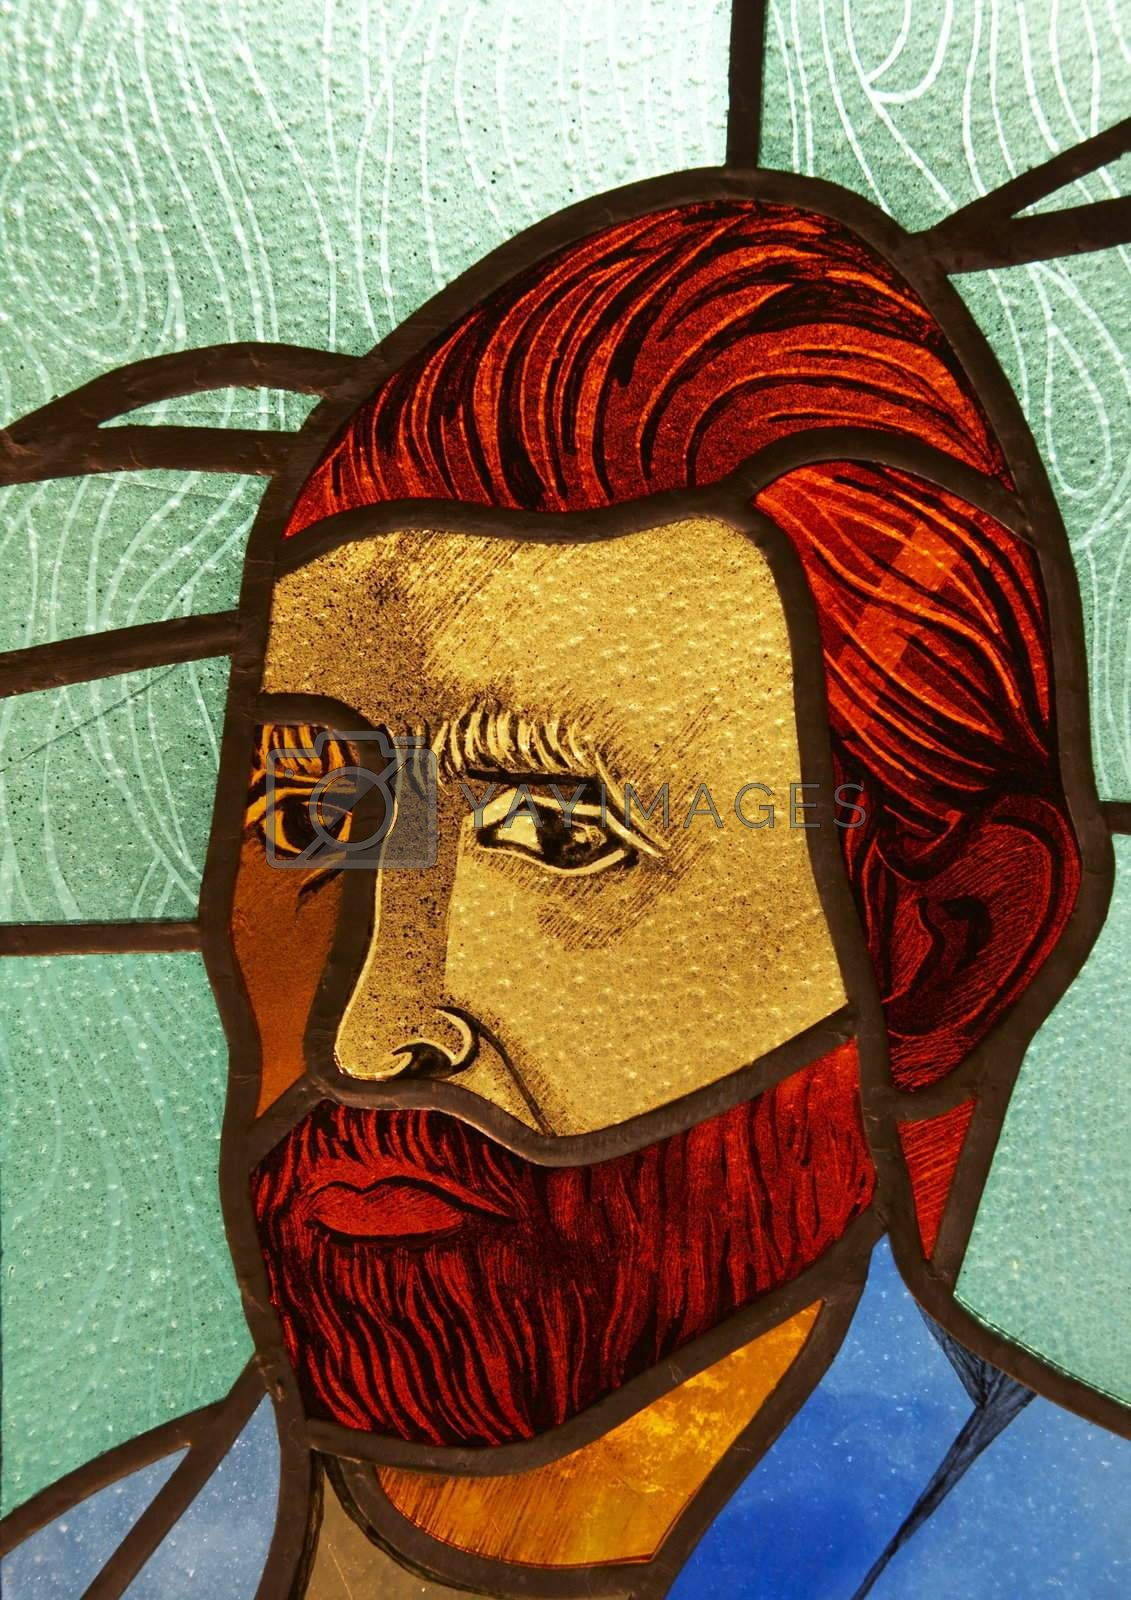 Stained glass with man portrait